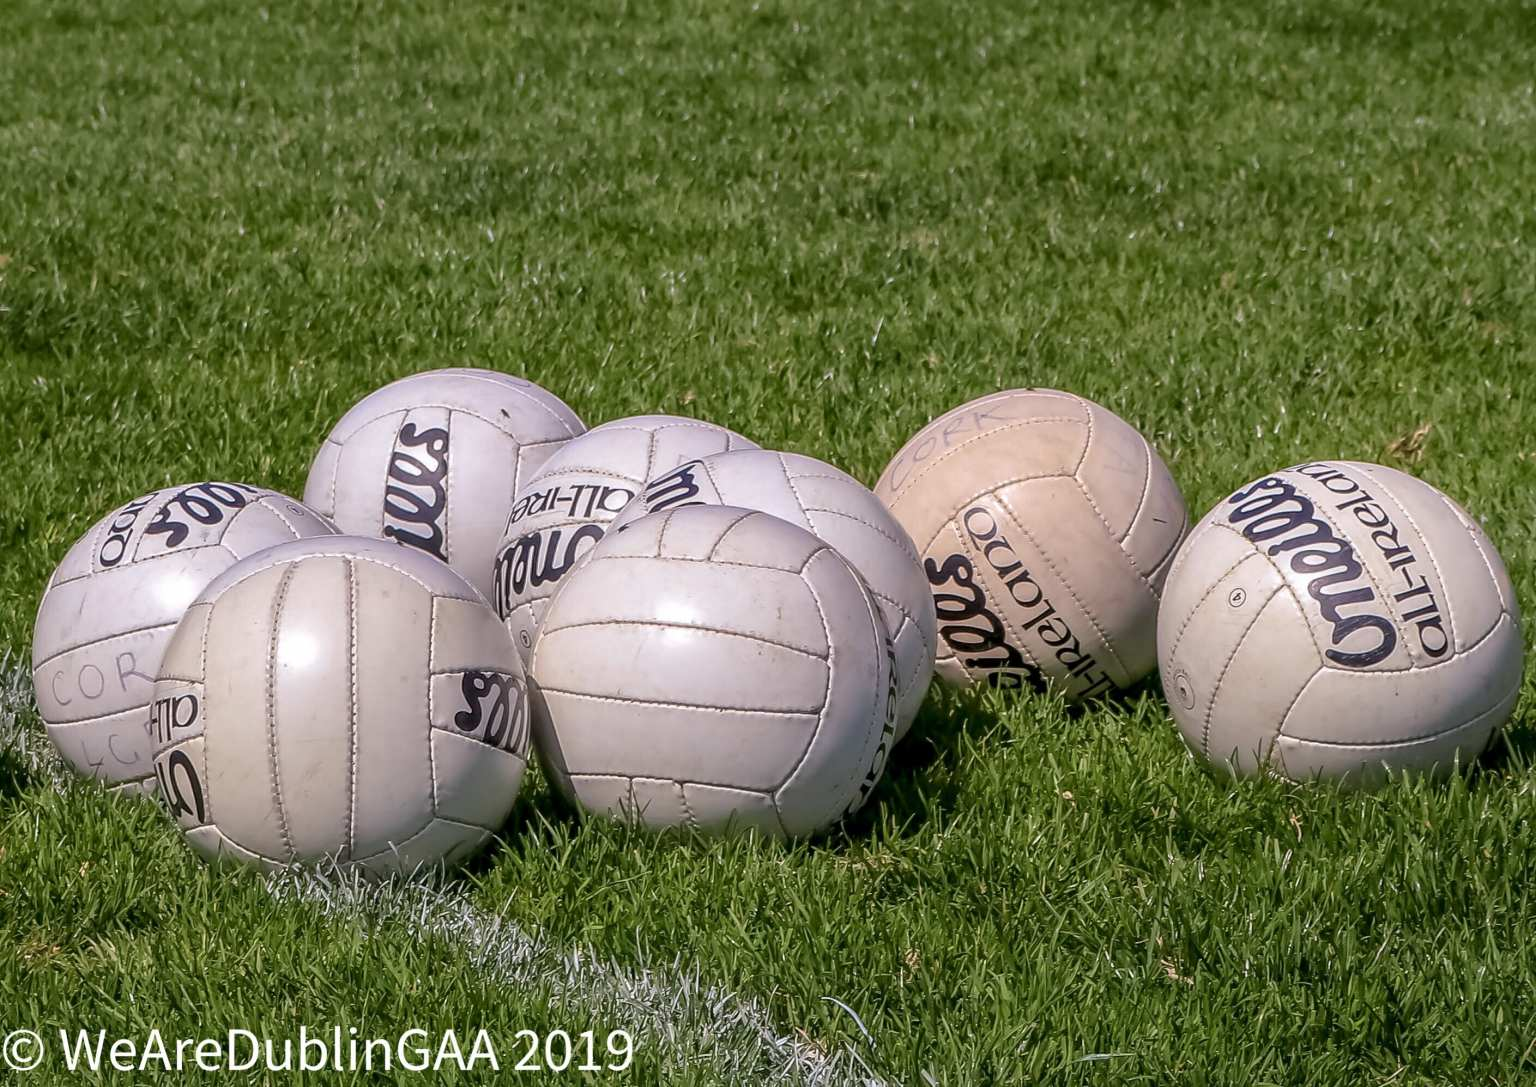 Eight Gaelic Footballs on a pitch to advertise the LGFA All Ireland Club Seven A Side Tournament